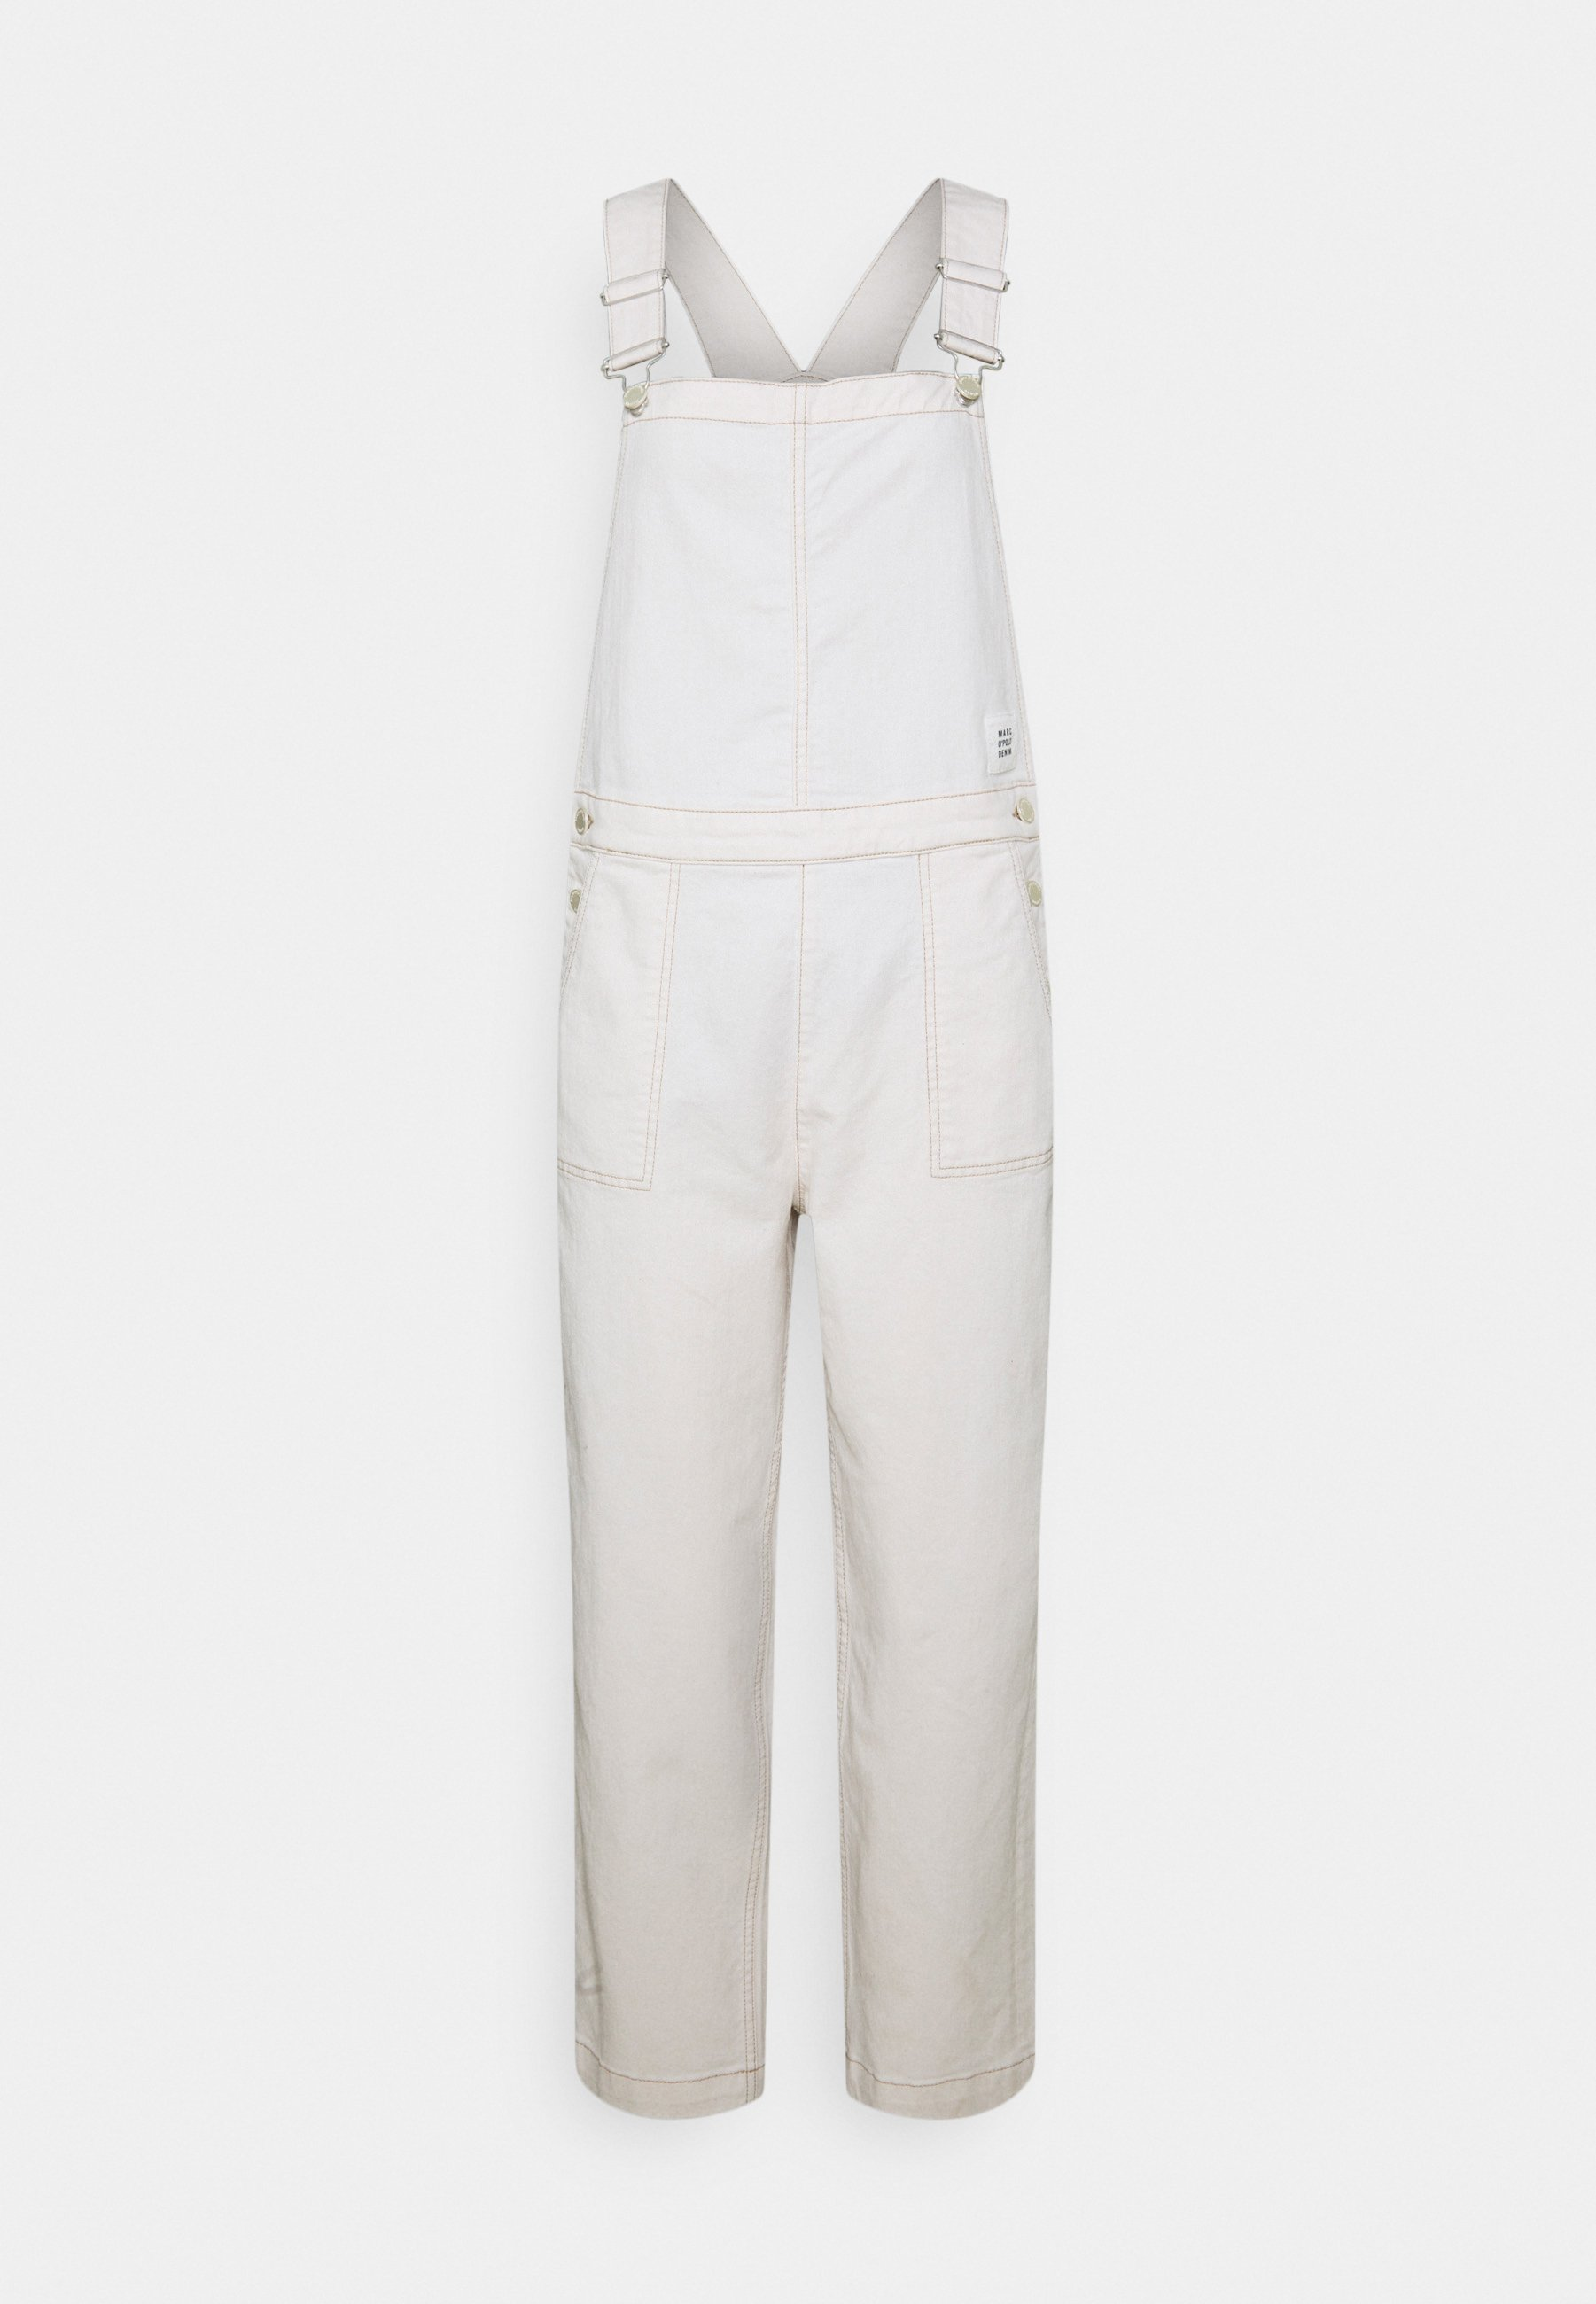 Women DUNGAREE WIDE LEG CROPPED LENGTH - Dungarees